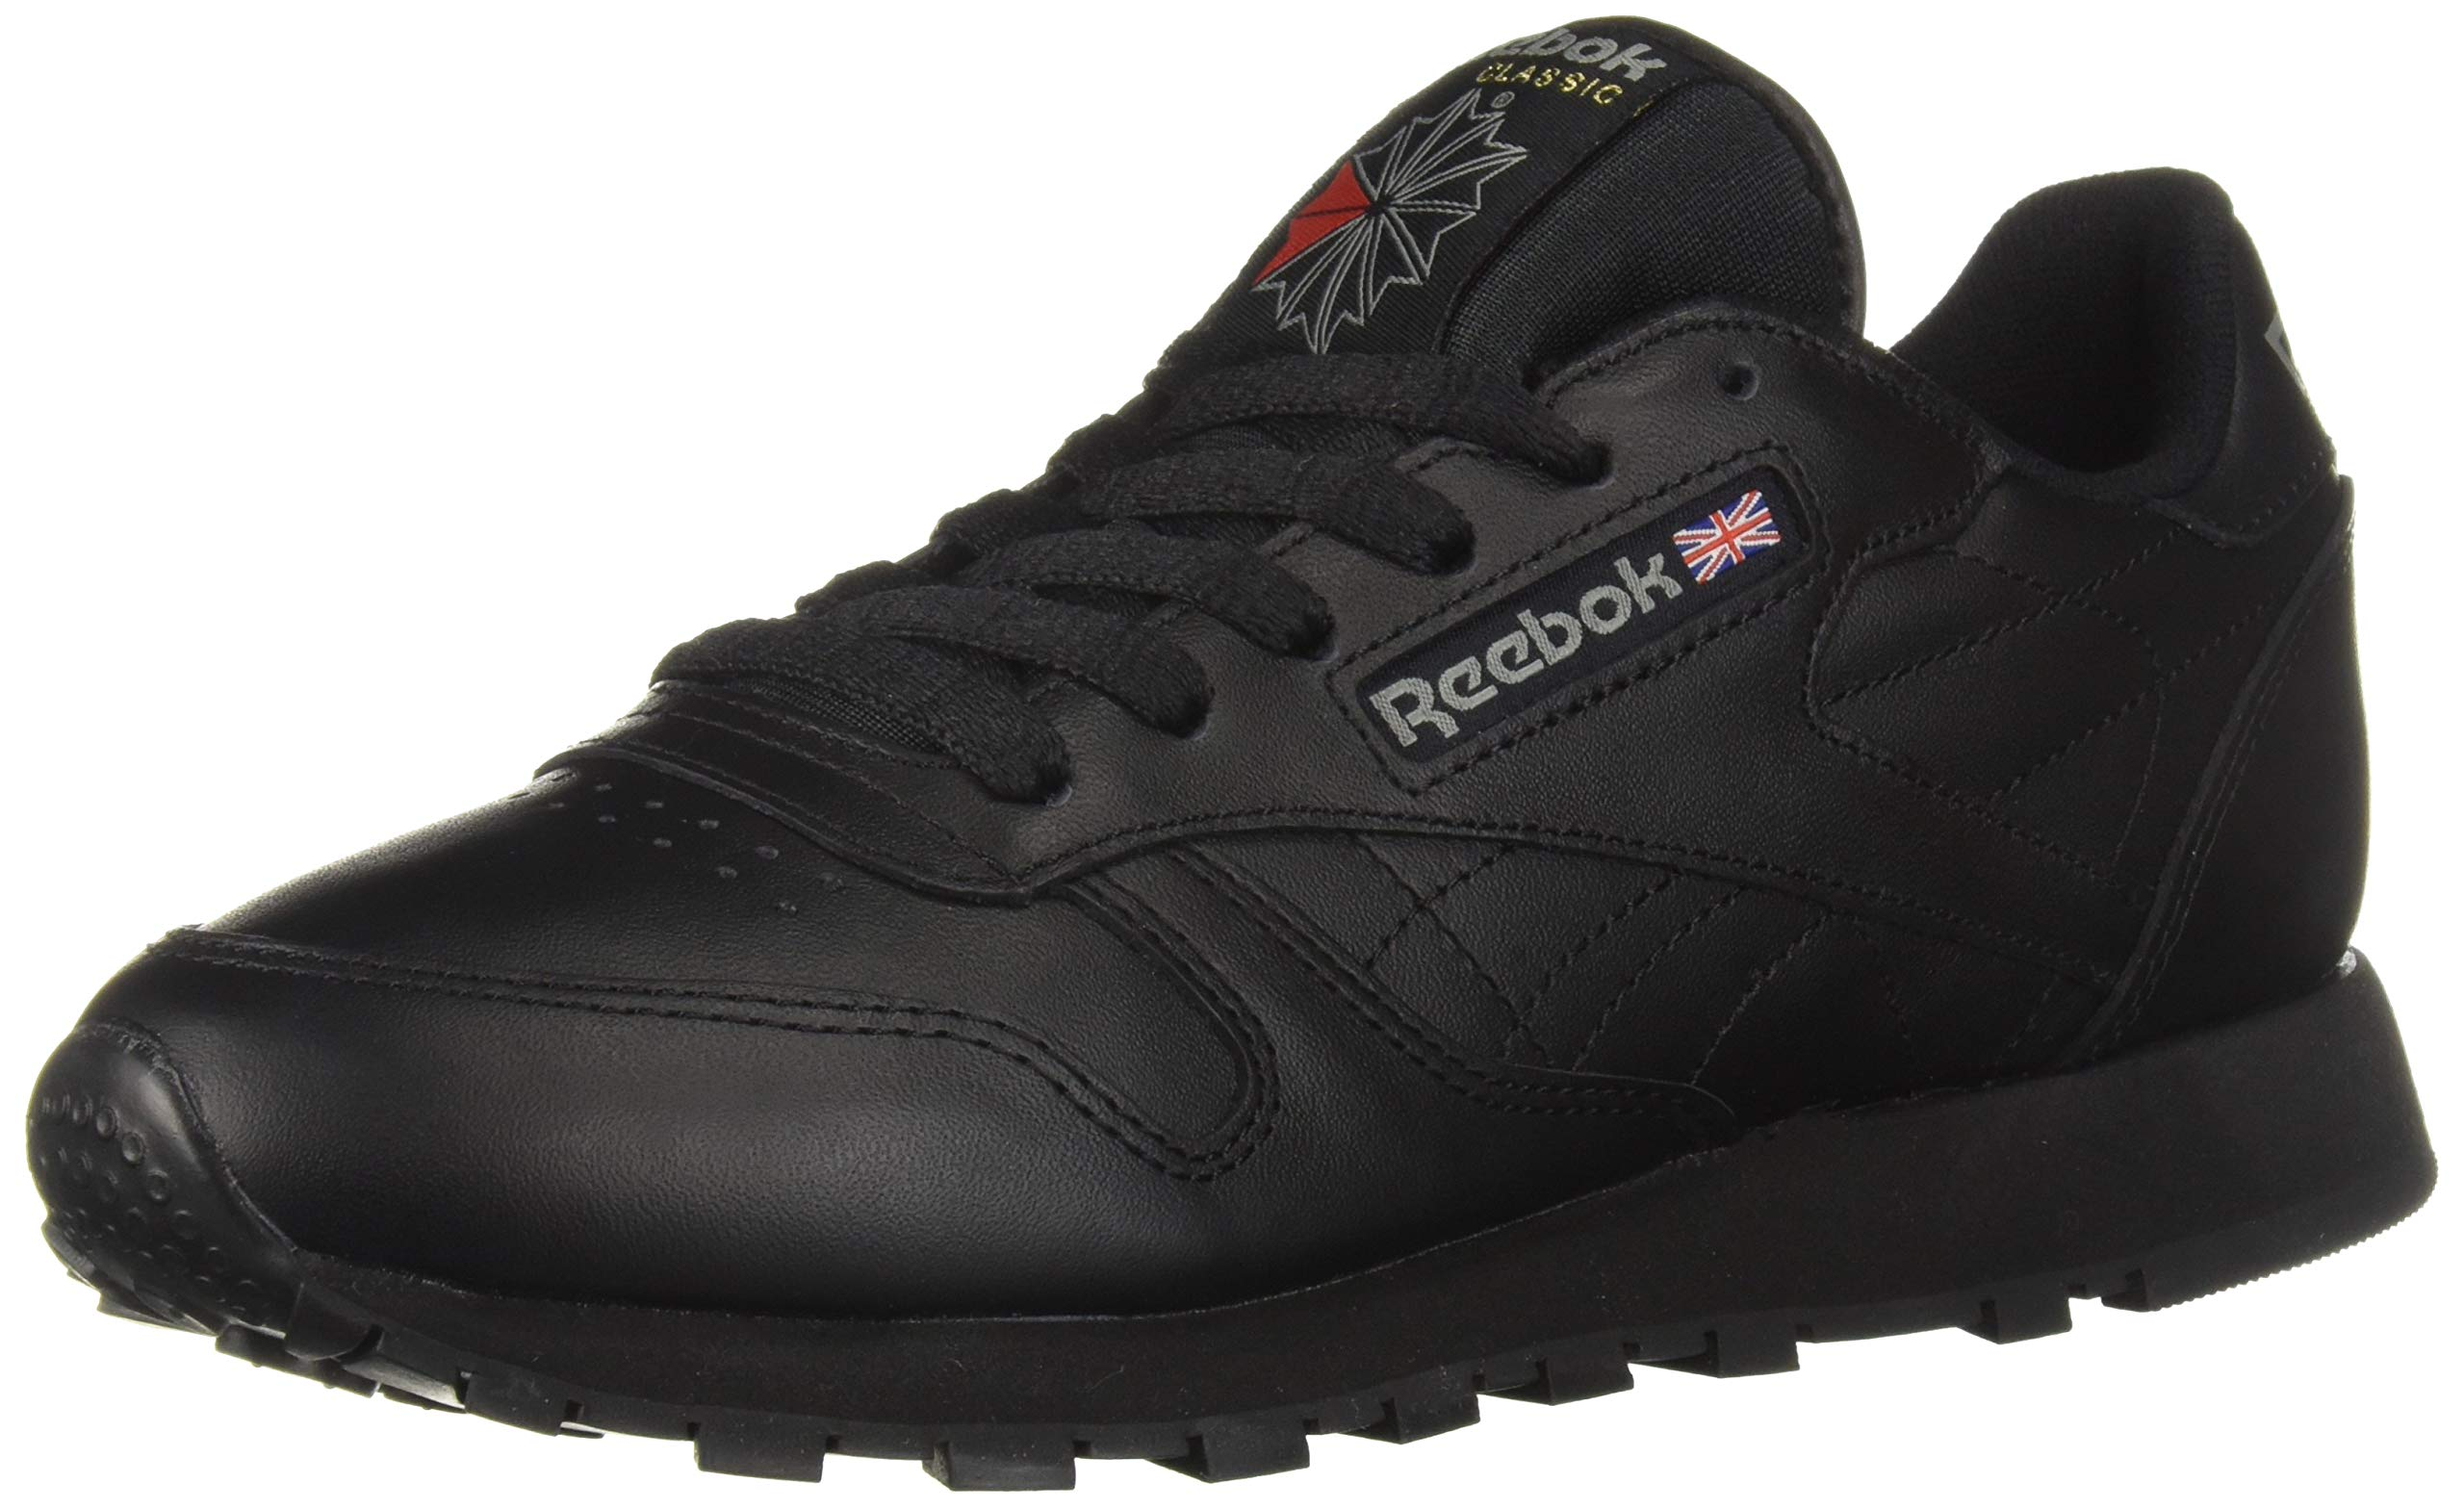 Reebok Men's Classic Leather Sneaker, Black, 10.5 M by Reebok